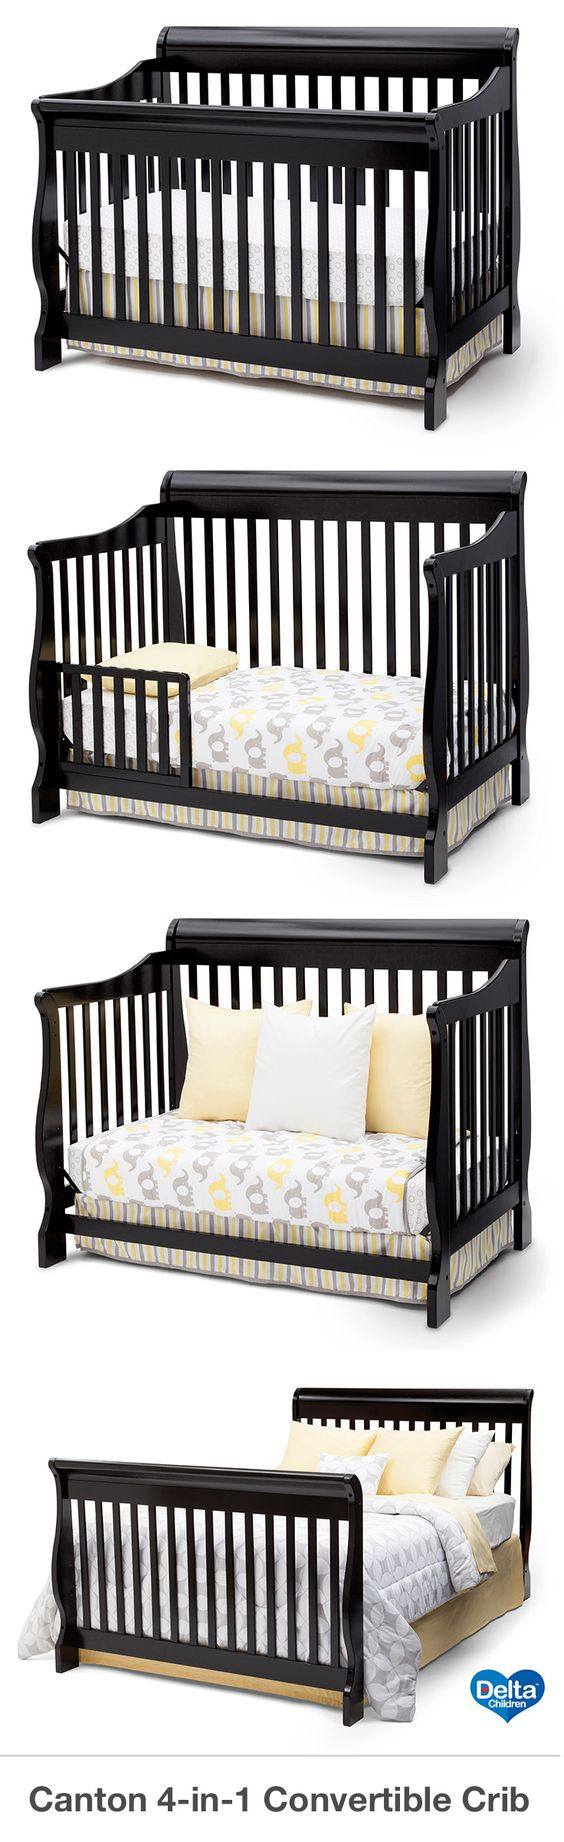 Convertible crib cribs and convertible on pinterest for Classic house day bed